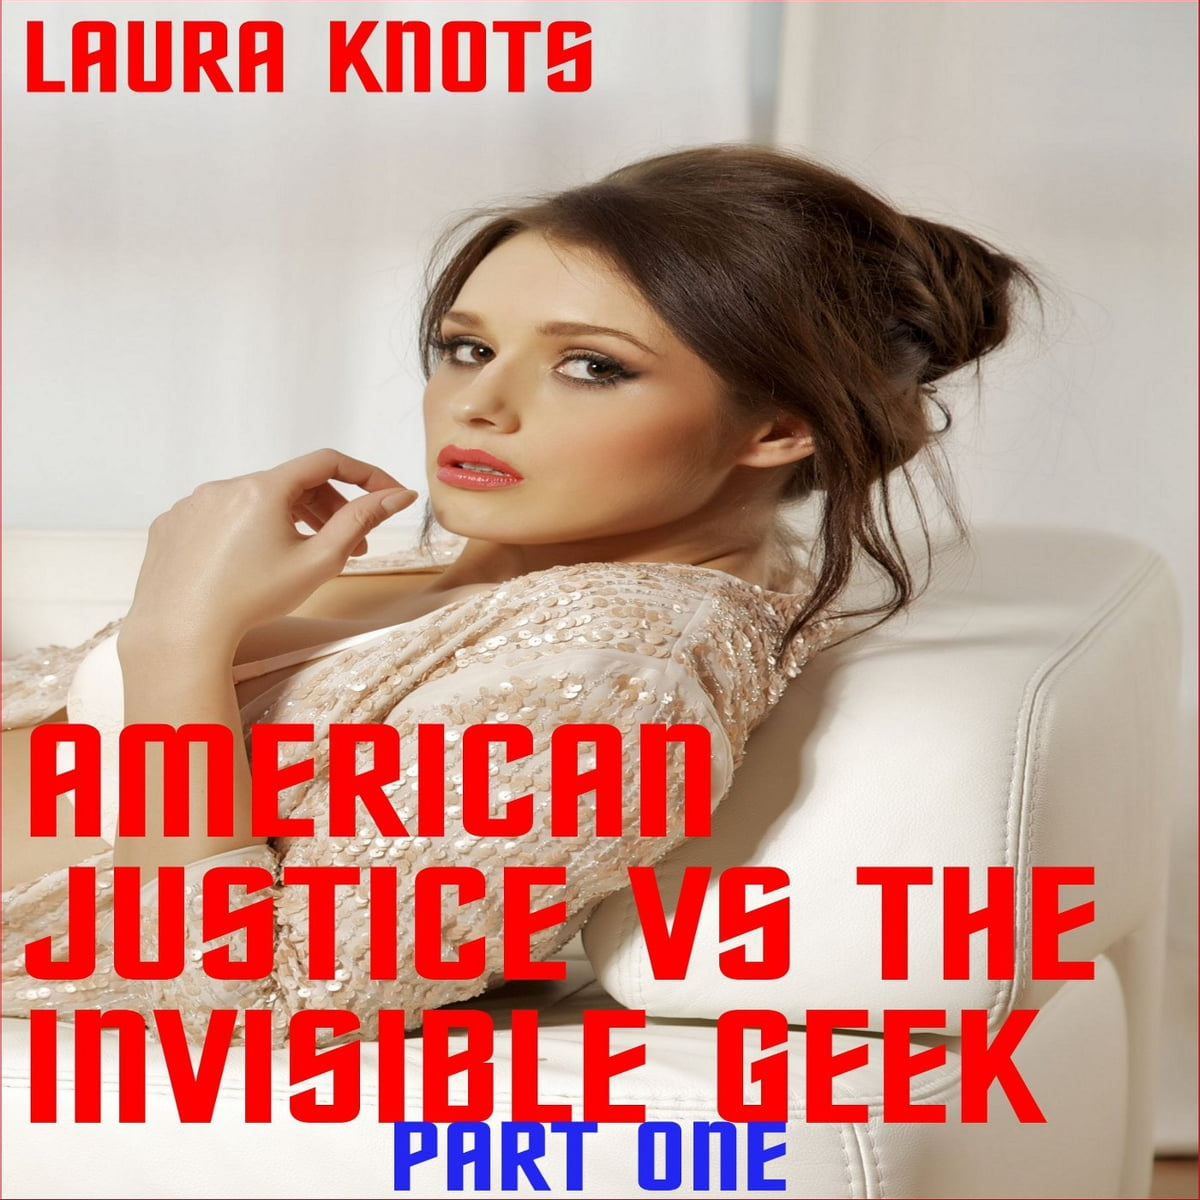 American Justice Vs The Invisible Geek Part One Ebook By Laura Knots 1230001011395 Rakuten Kobo United States Cherry chevapravatdumrong news, gossip, photos of cherry chevapravatdumrong, biography help us build our profile of cherry chevapravatdumrong! kobo com